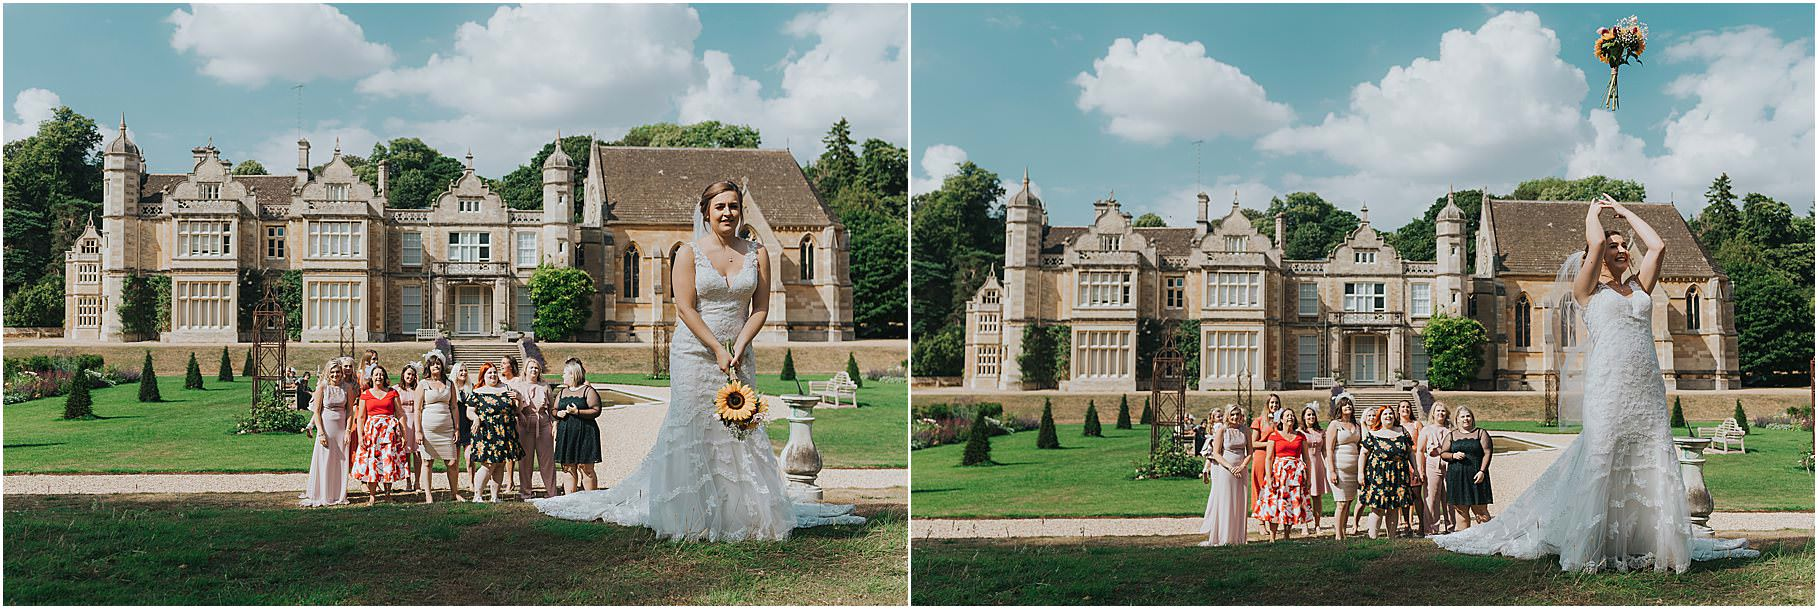 Rutland Weddings Exton Hall Exton Oakham Rutland Water Photographer 1072 - Mr and Mrs Barker // RUTLAND WEDDING